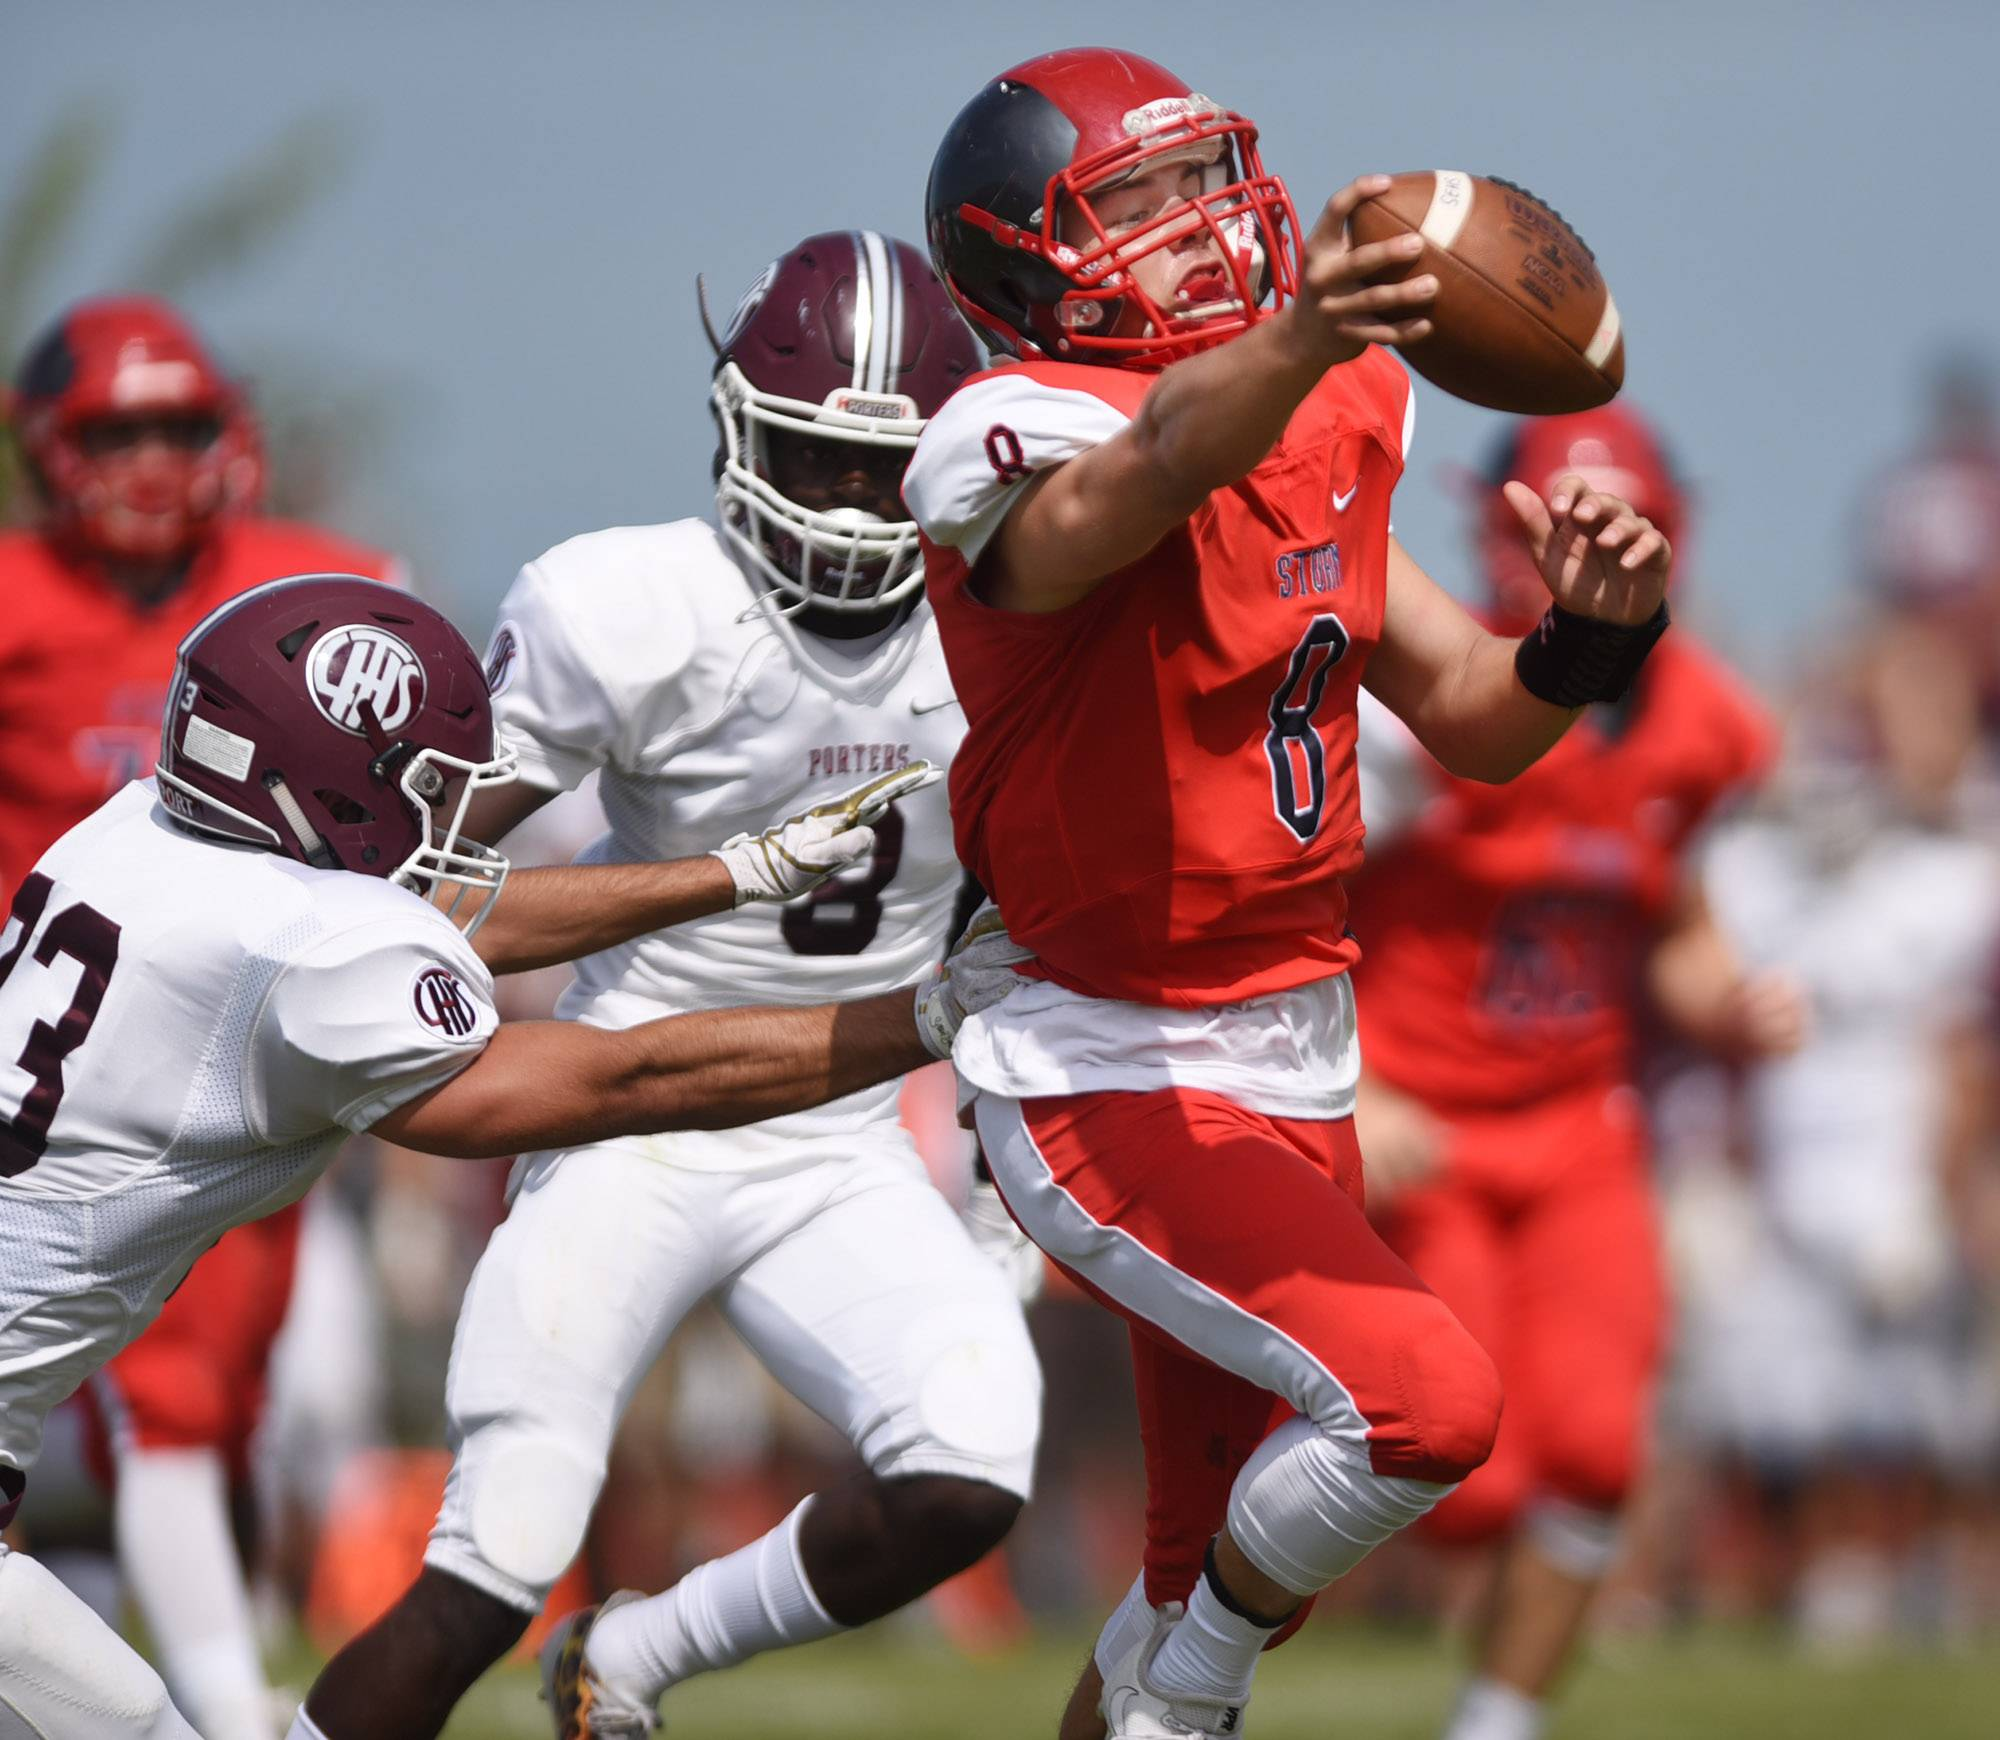 South Elgin's Nate Gomez scores his second running touchdown of the first half against Lockport Saturday in South Elgin.